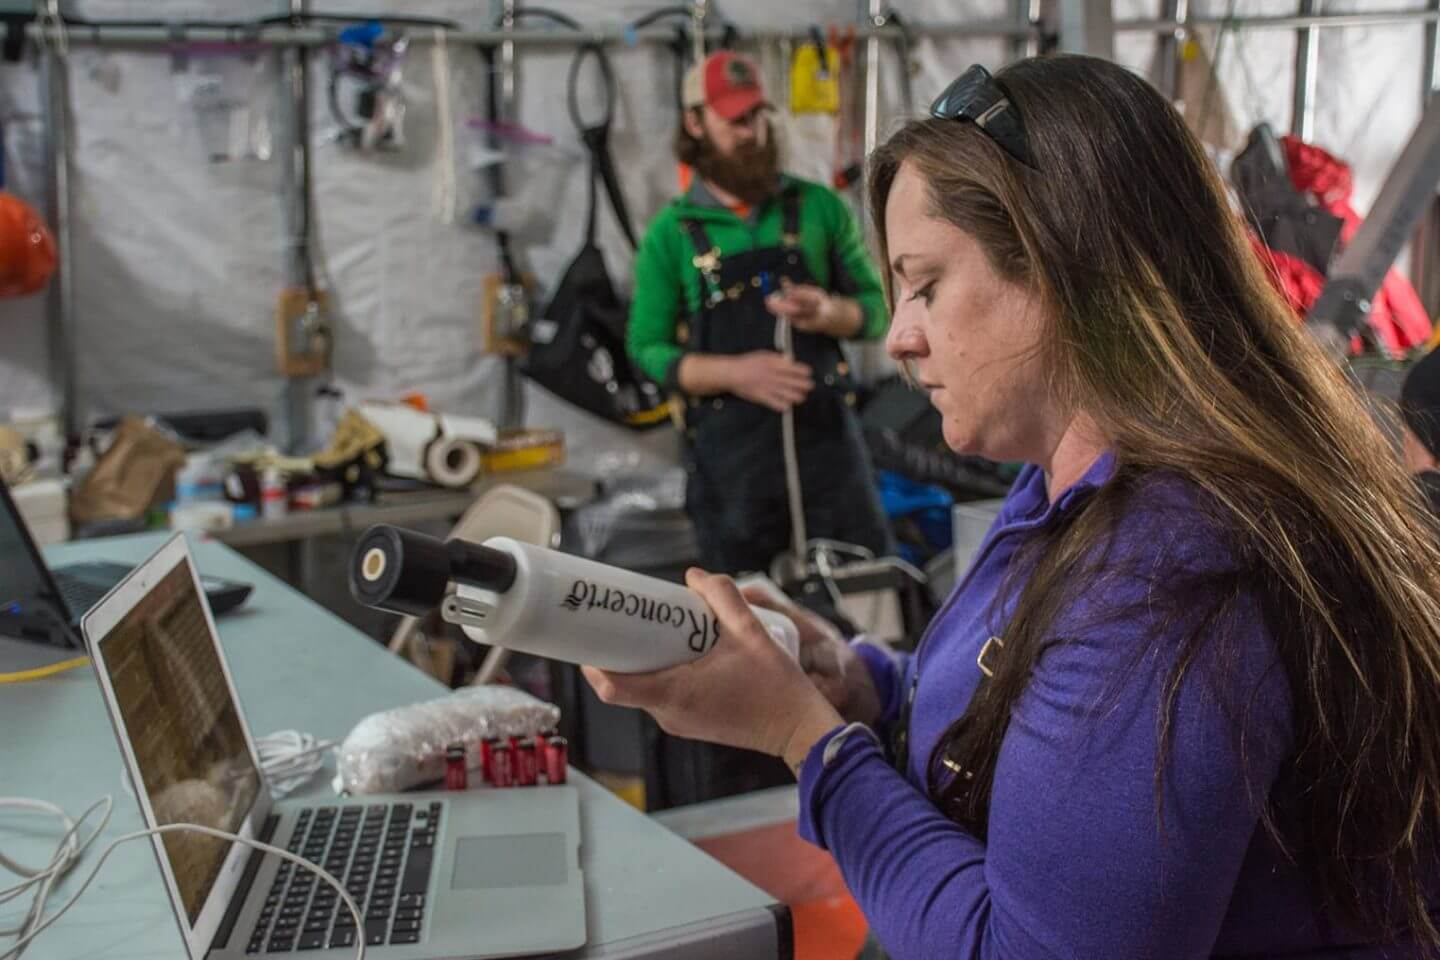 Britney Schmidt, the lead scientist for the project SIMPLE, readies a CTD, which measures the conductivity, temperature, and depth of the seawater. This is to corroborate readings from the underwater autonomous vehicle ARTEMIS. The Sub-ice Investigation of Marine and Planetary-analog Ecosystems (SIMPLE) project is funded by NASA, and is the basis for the technology that will one day be used to investigate the icy ocean on Jupiter's moon Europa. The project's lead scientist is Britney Schmidt from the Georgia Institute of Technology. Photographed by: Mike Lucibella, ASC